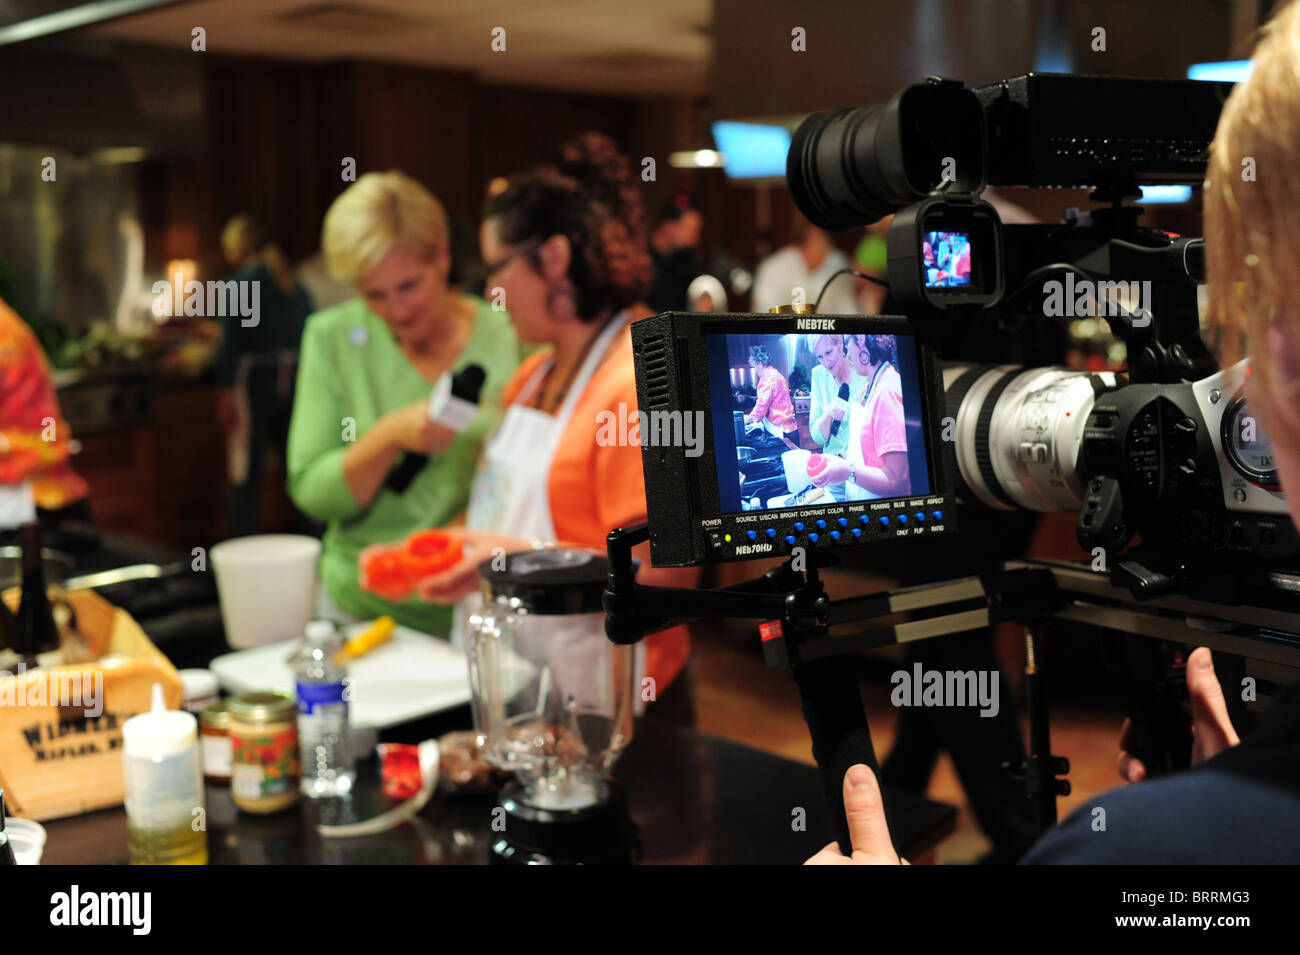 USA New York Canandaigua NY Finger Lakes Region - New York Wine and Culinary Center cooking contest television media - Stock Image